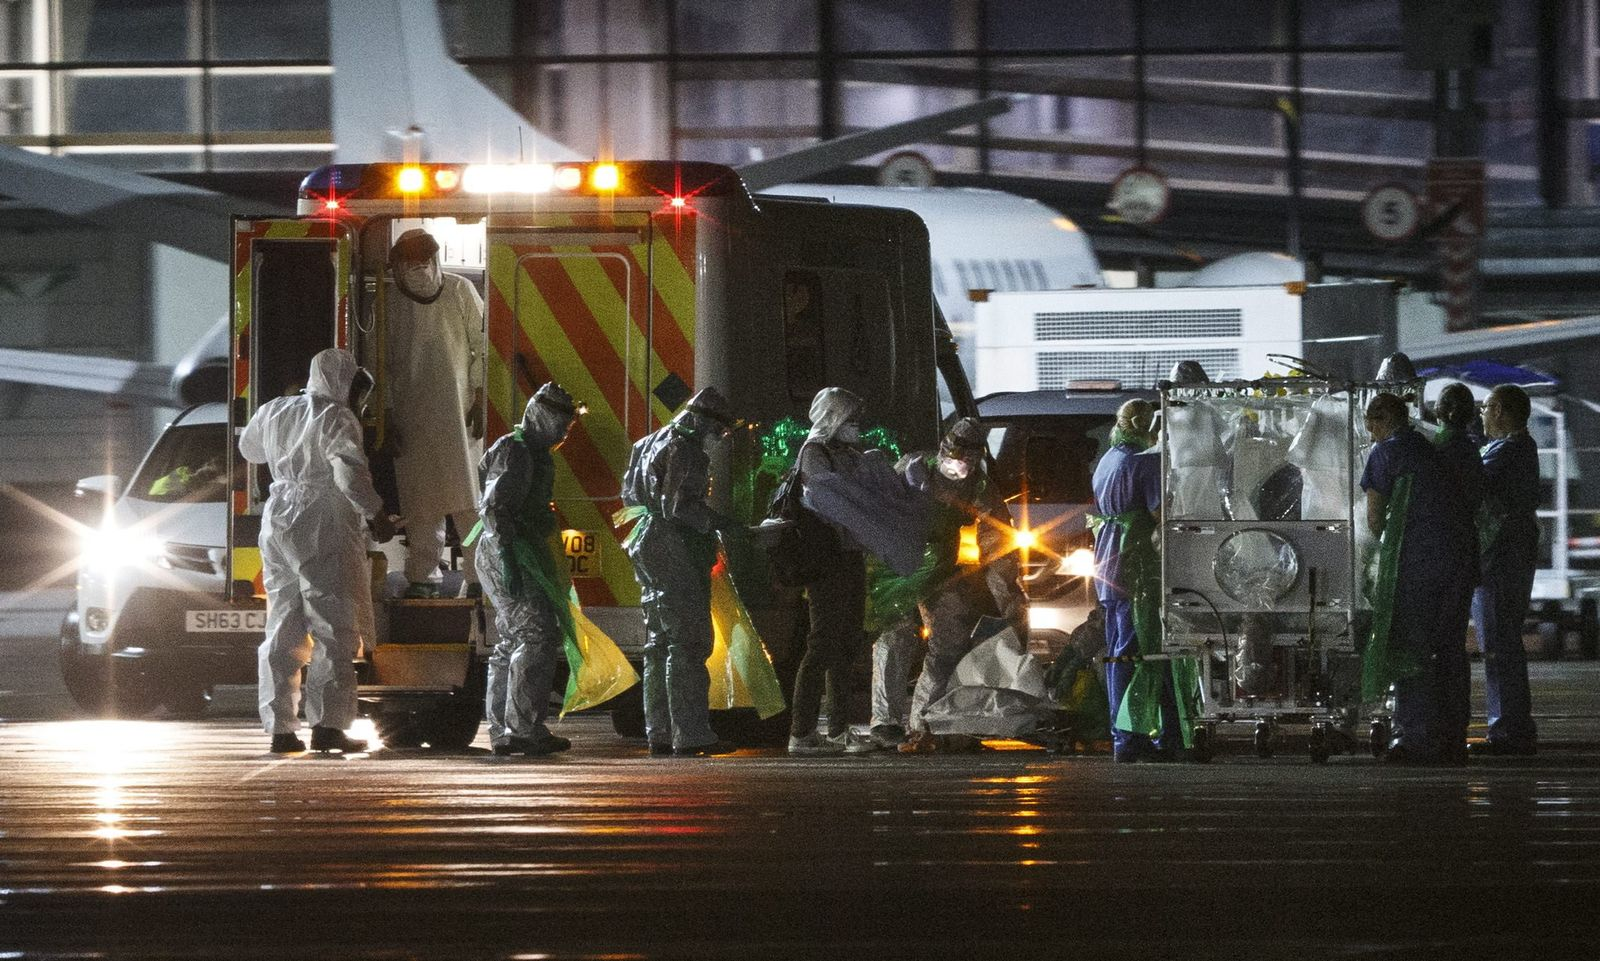 Ebola case confirmed in Scotland, victim airlifted to London